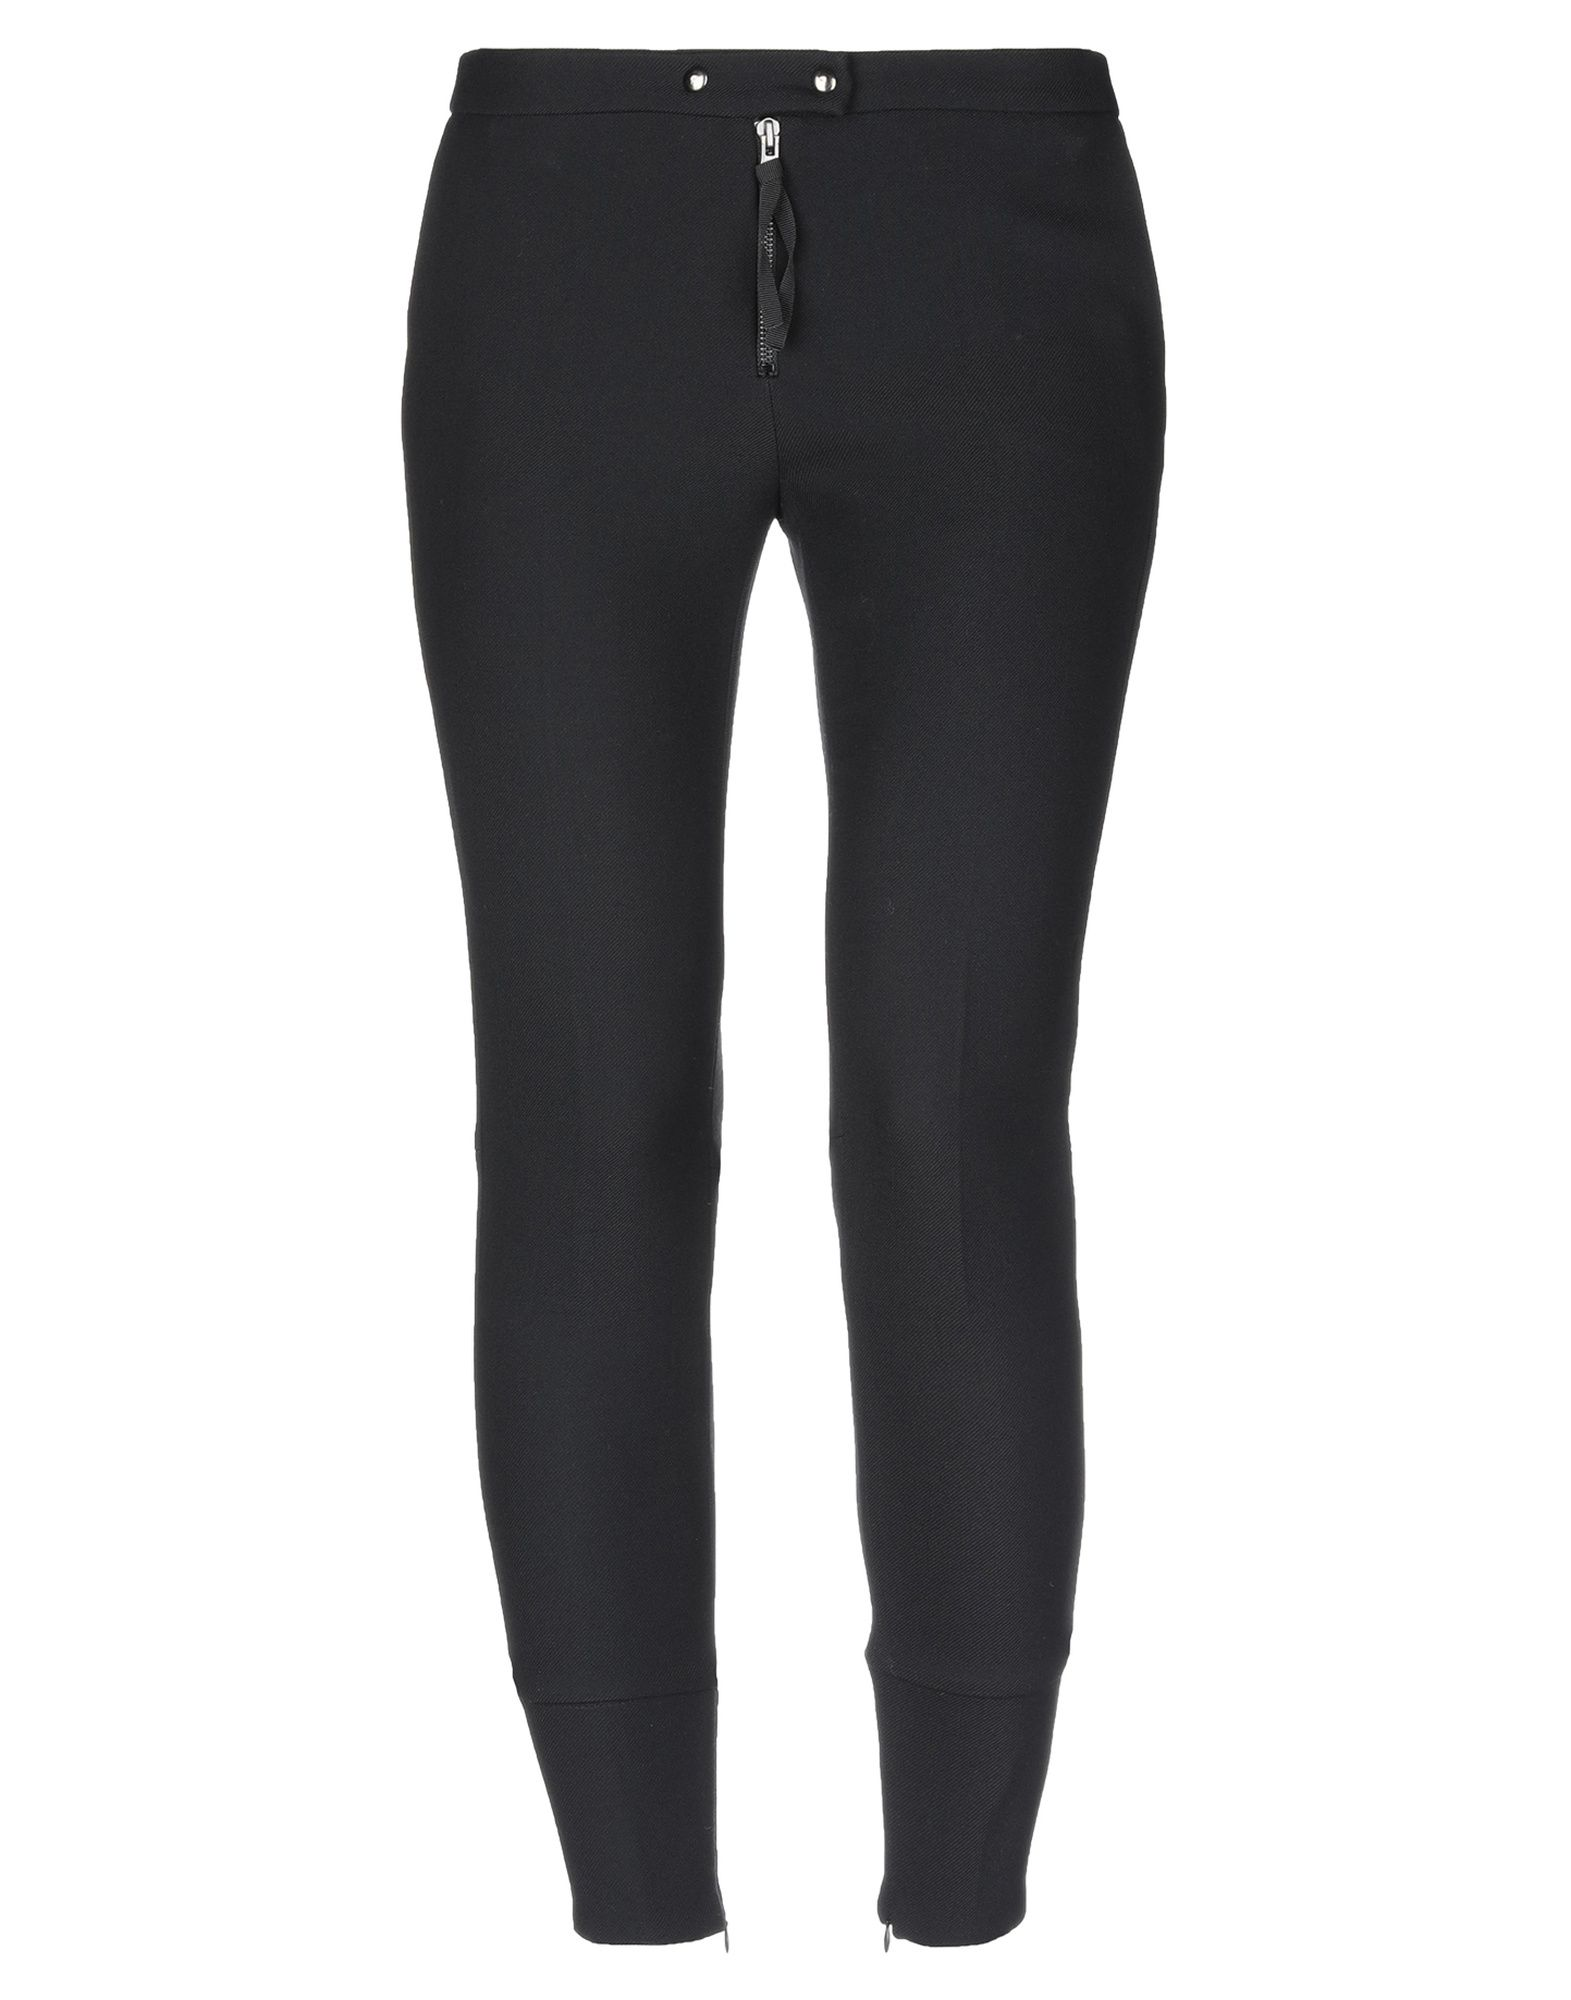 SPACE   SPACE STYLE CONCEPT Casual Pants 13335763   Goxip